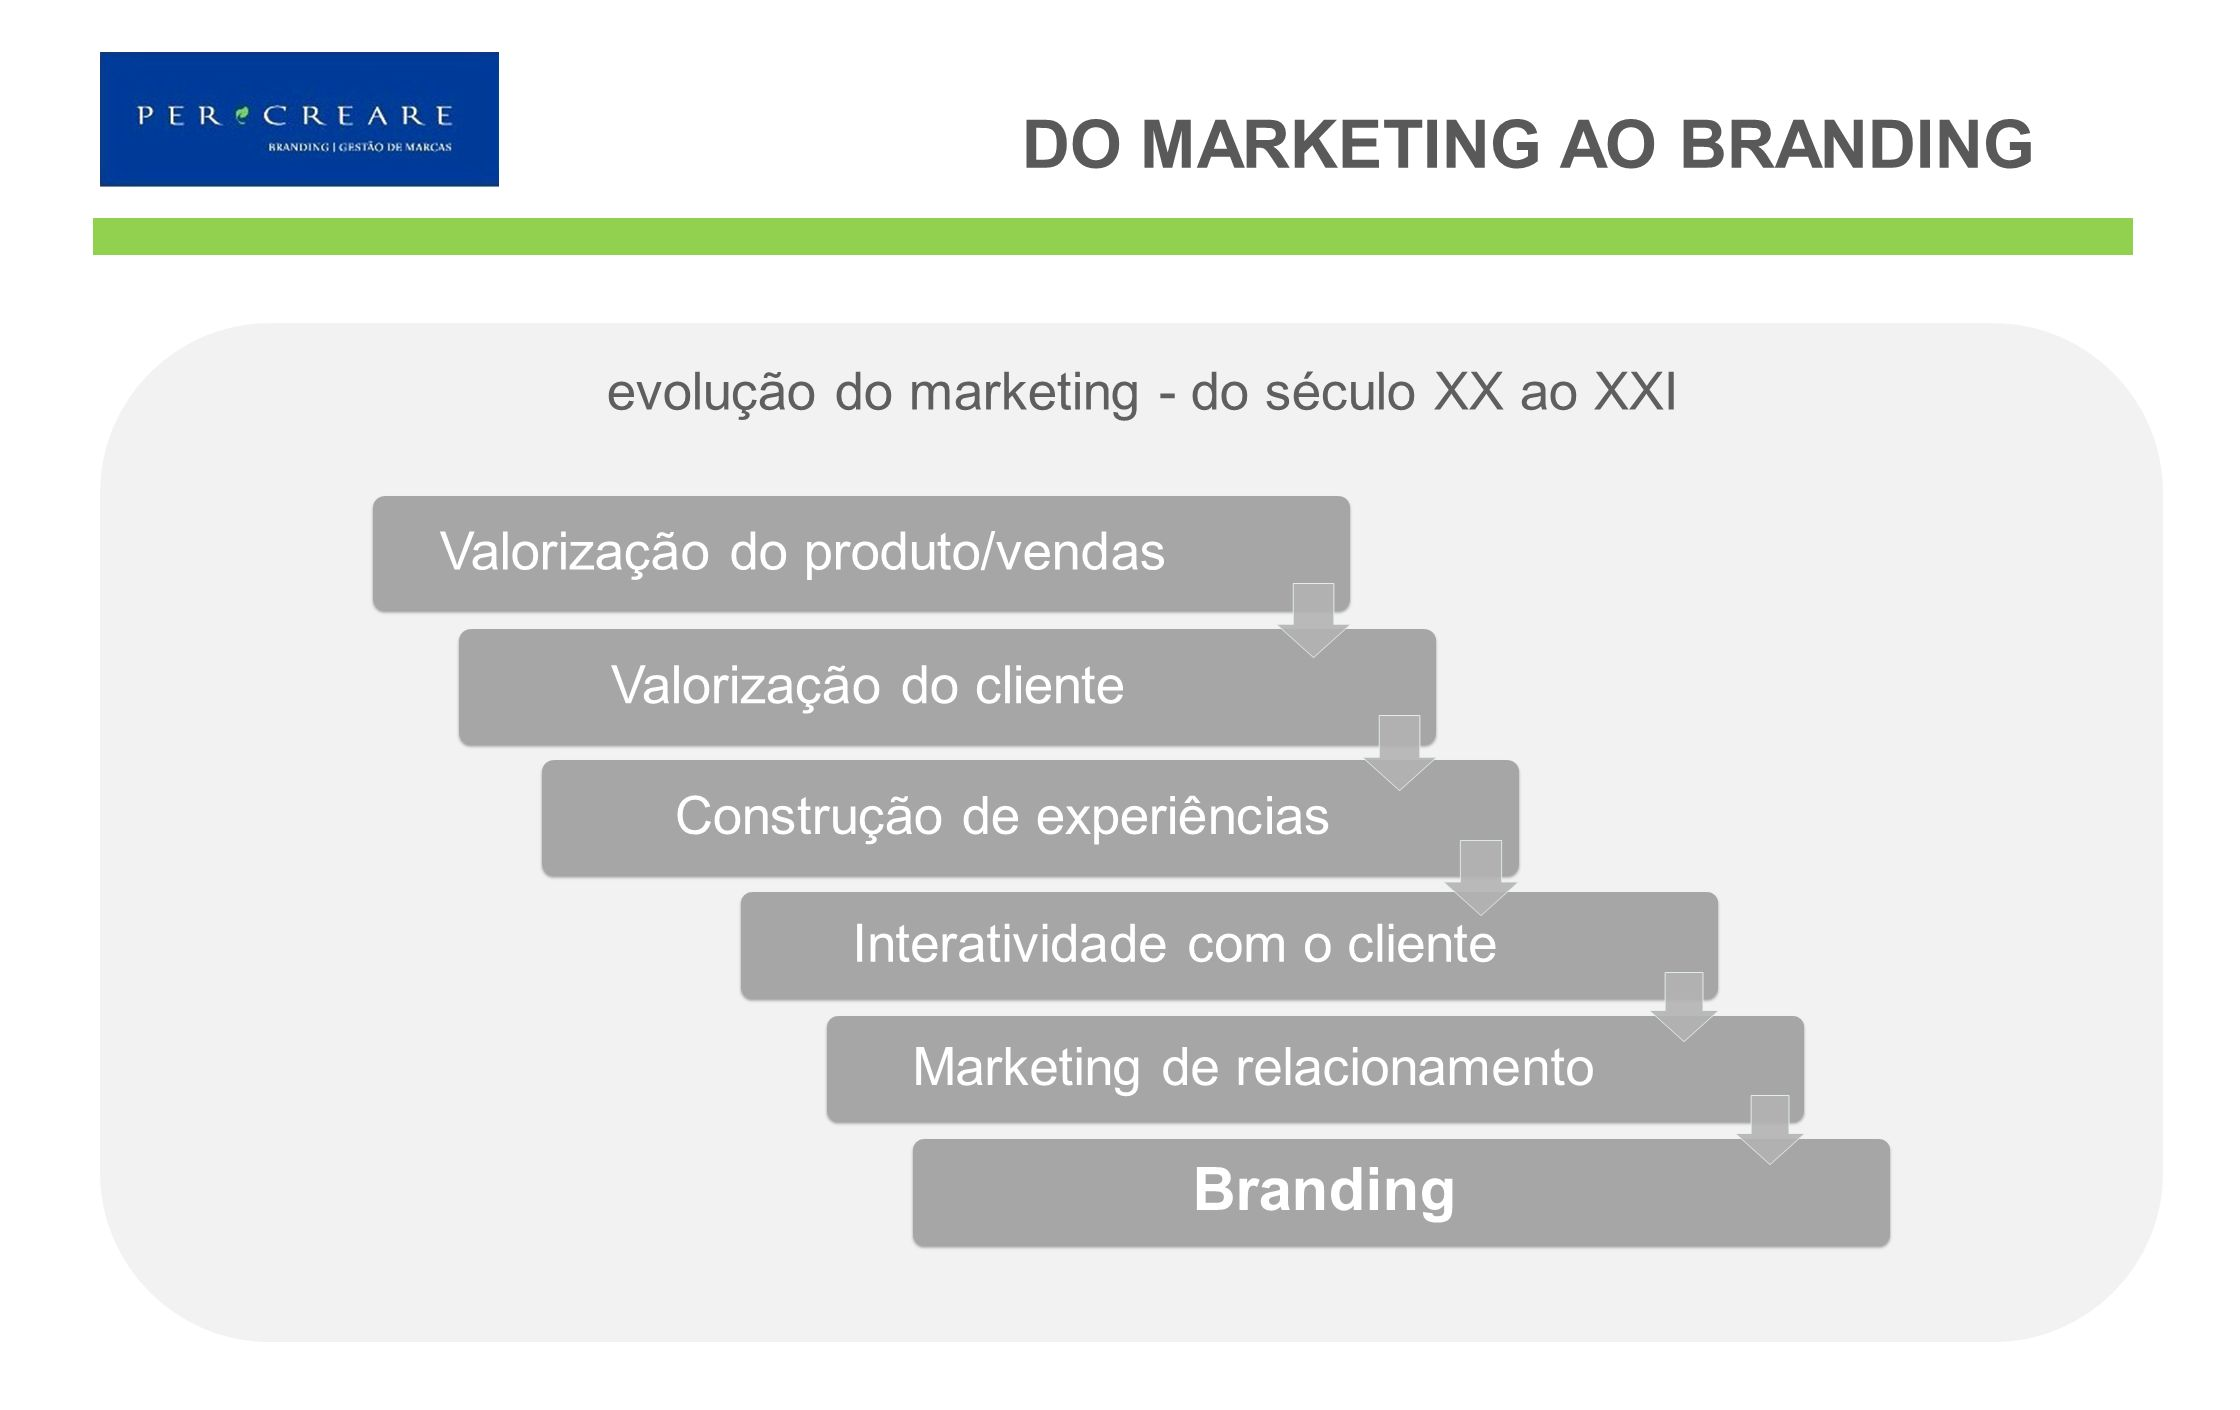 DO MARKETING AO BRANDING